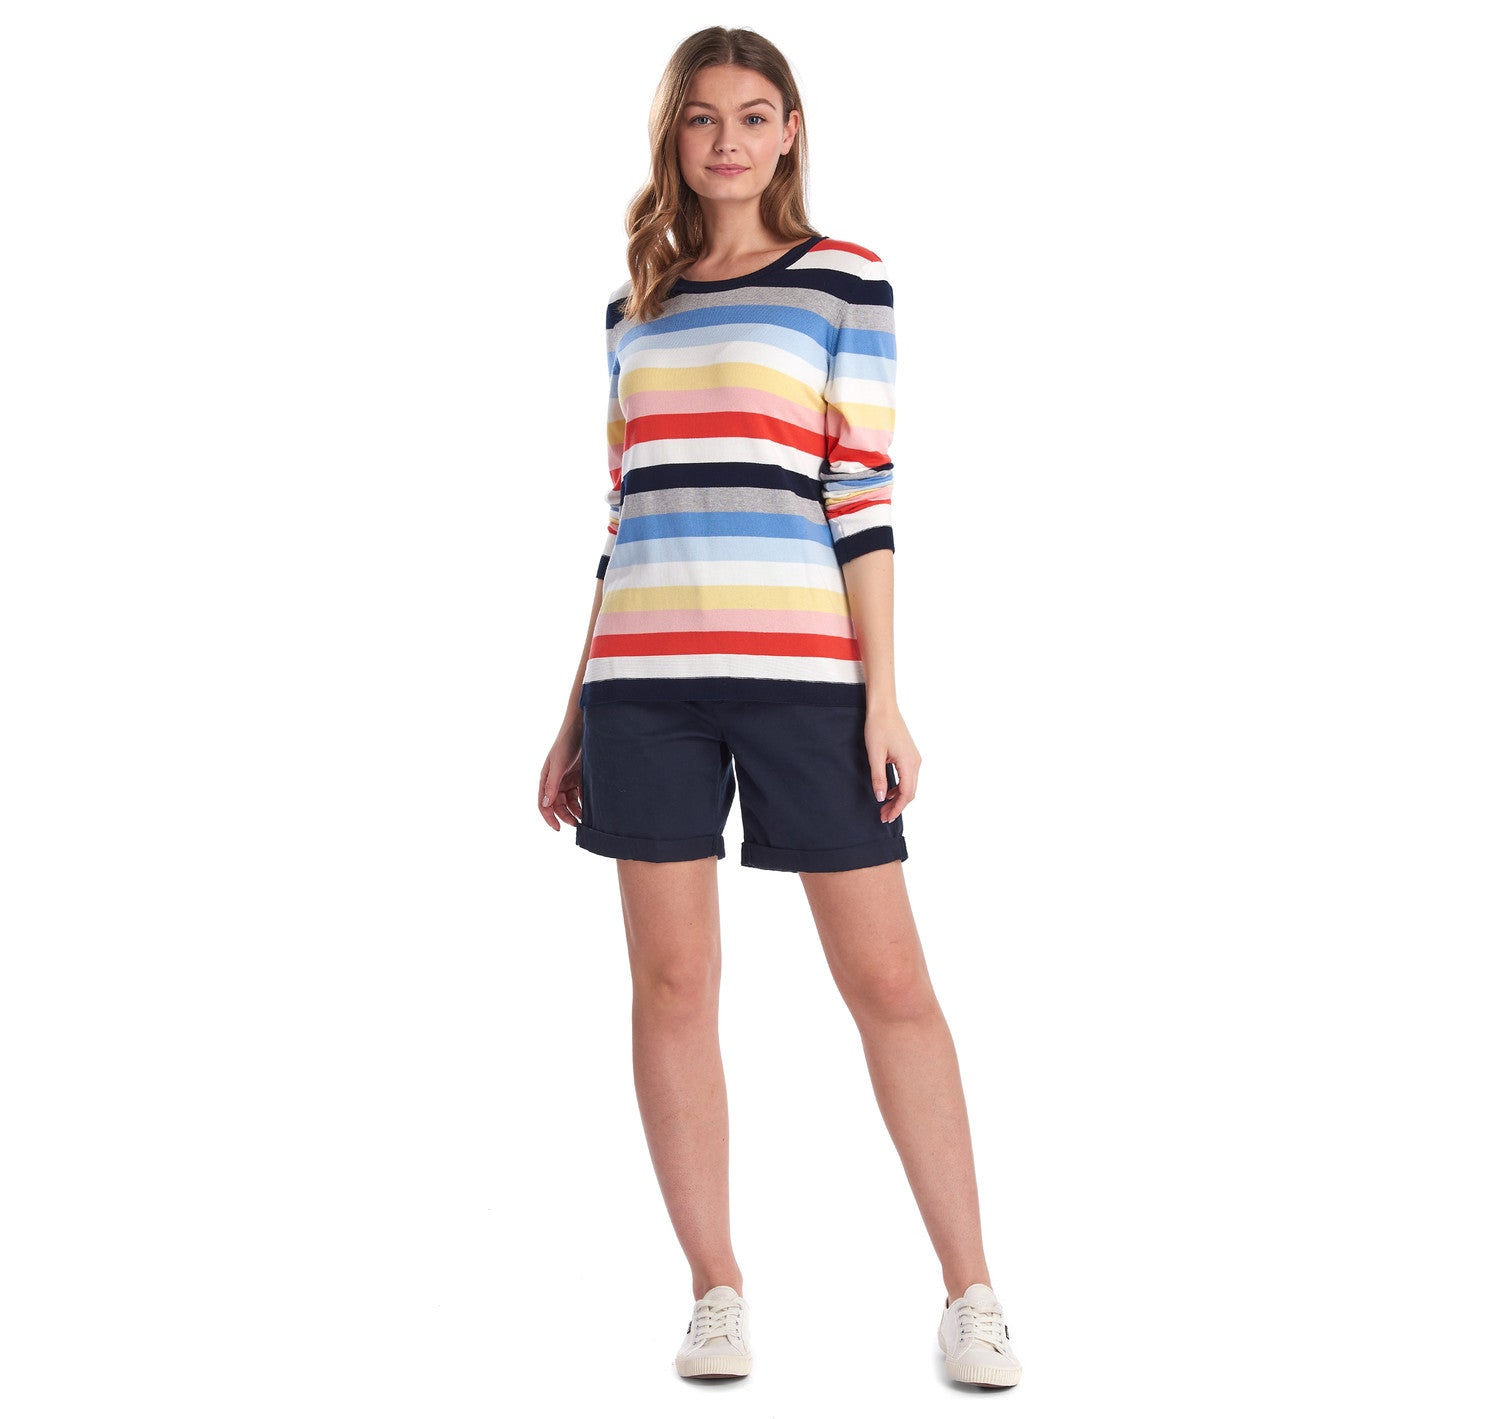 Barbour Seaview Knit Jumper for Ladies in Multi Stripe